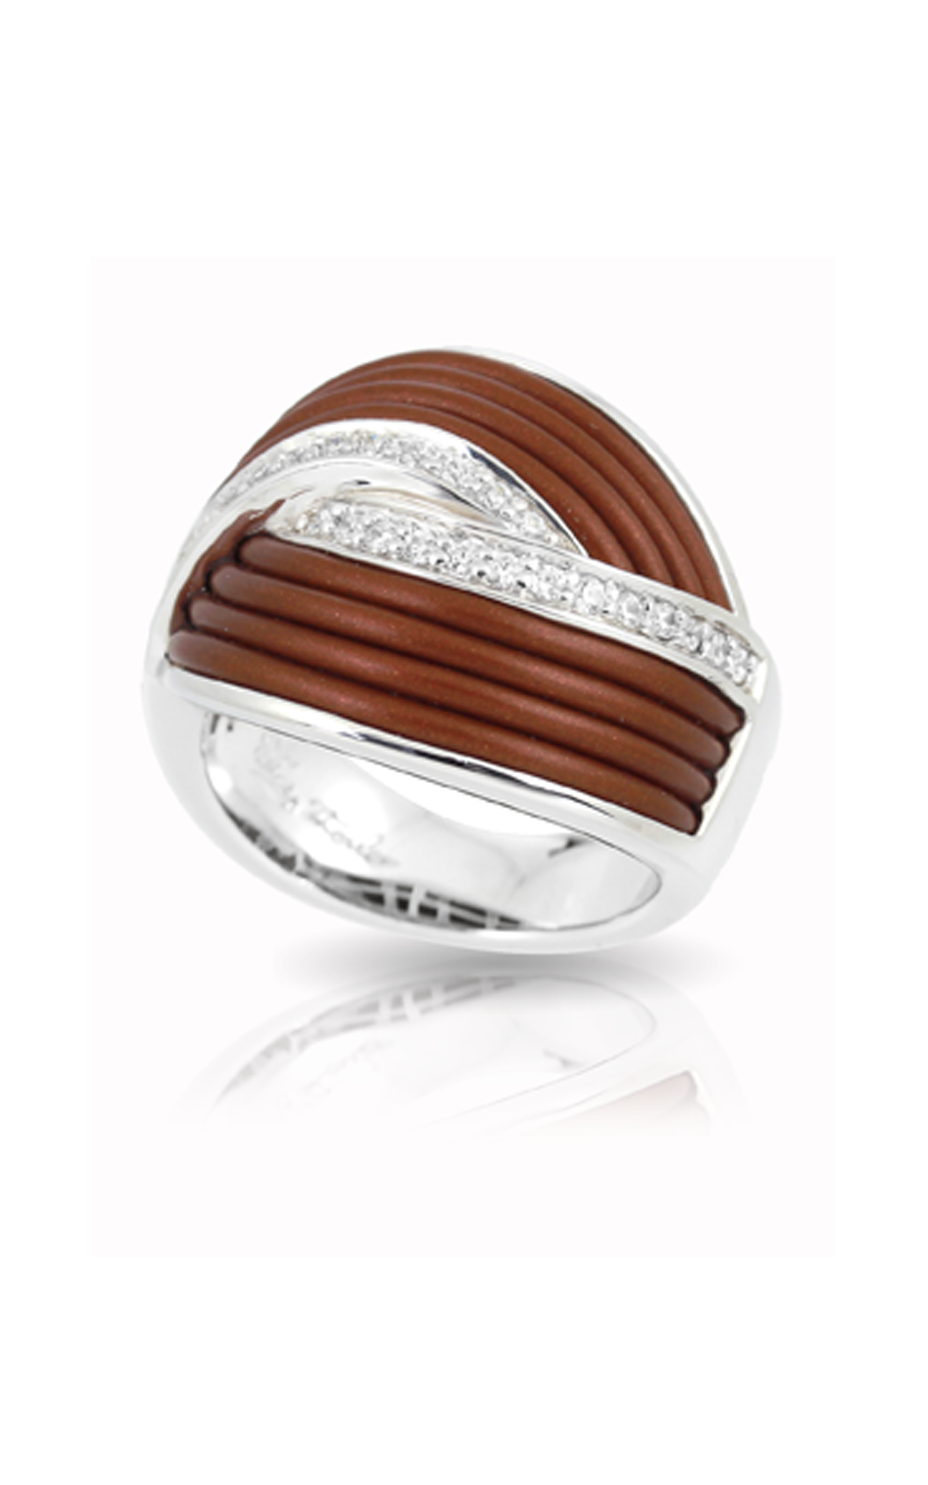 Belle Etoile Eterno Brown Ring 01051220502-6 product image